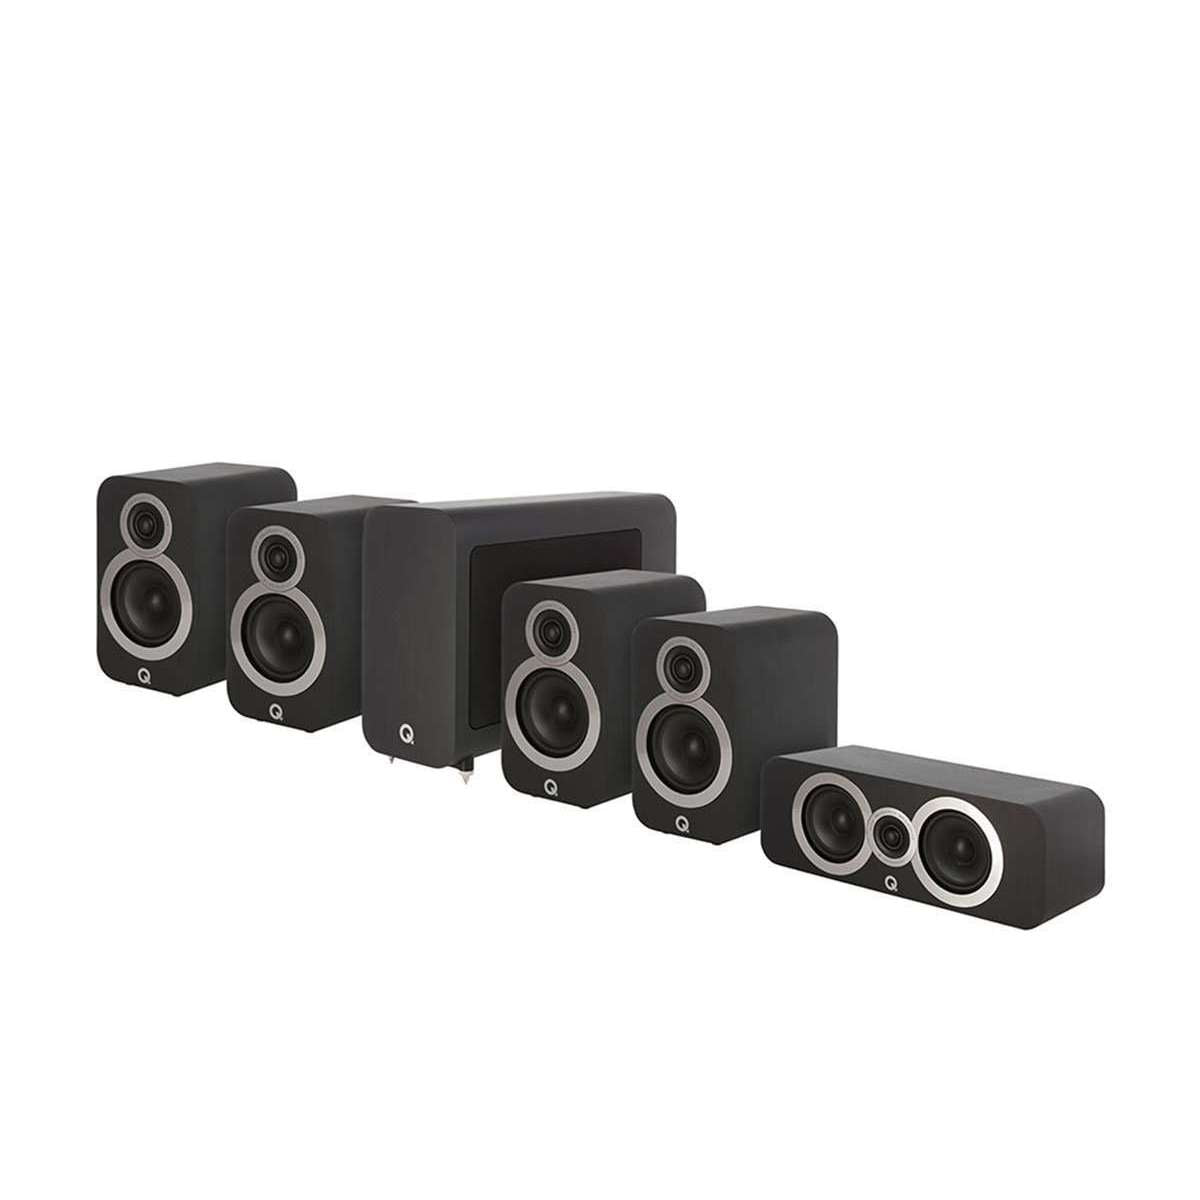 Q Acoustics Q3010i 5.1 Speaker Package